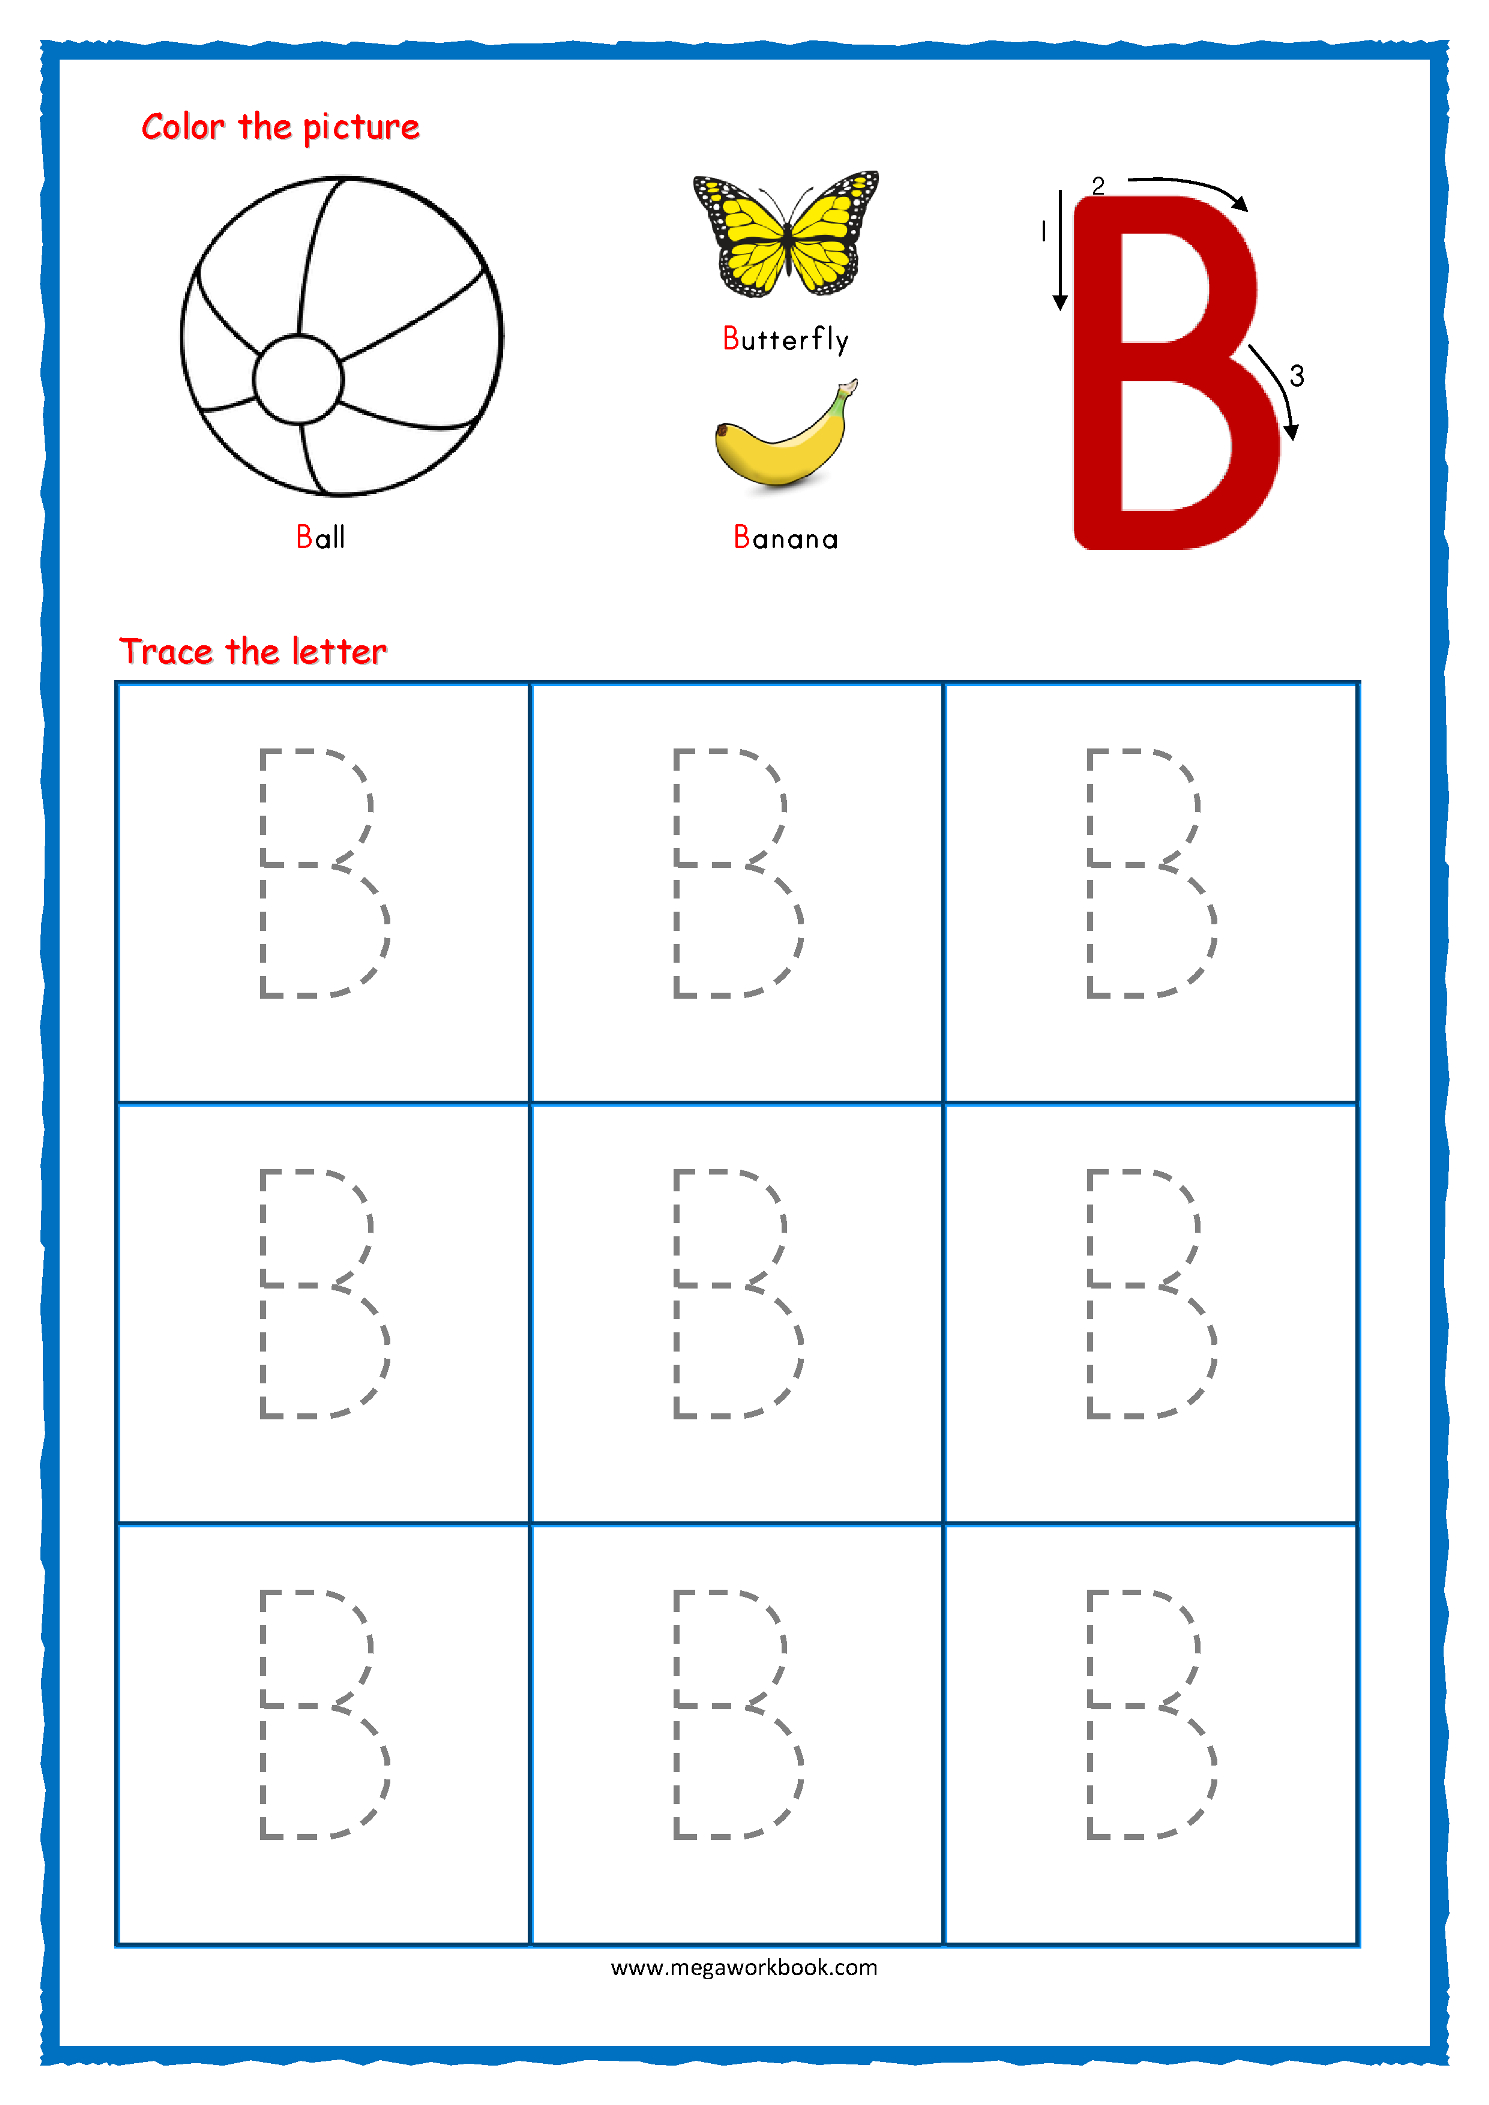 Tracing Letters - Alphabet Tracing - Capital Letters regarding Alphabet Worksheets Traceable